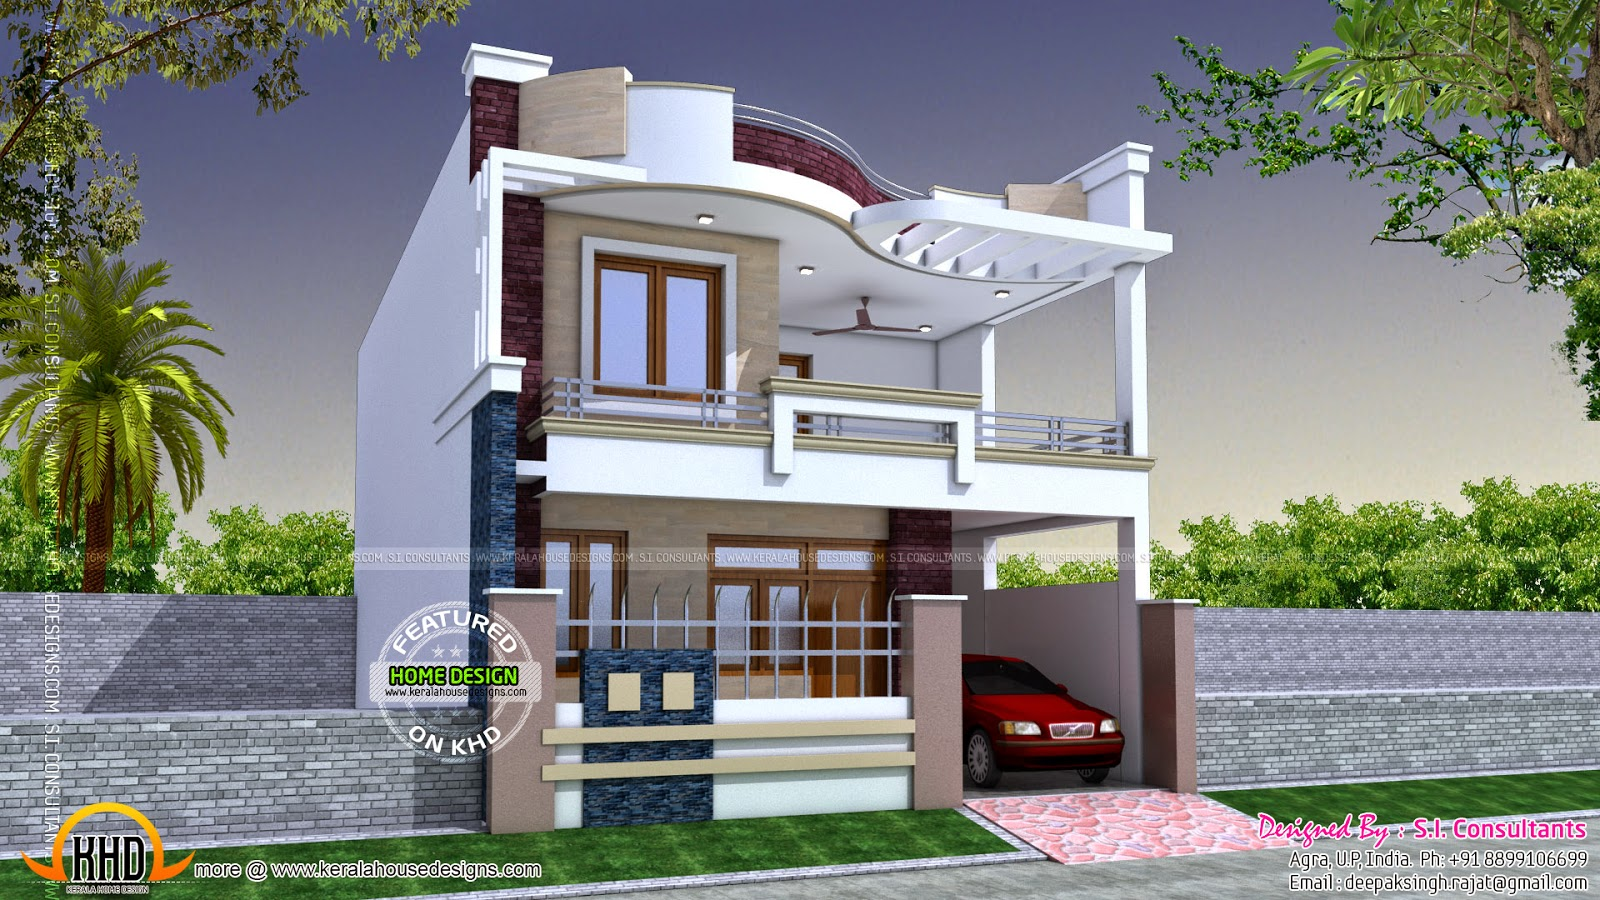 Modern indian home design kerala home design and floor plans Indian home design